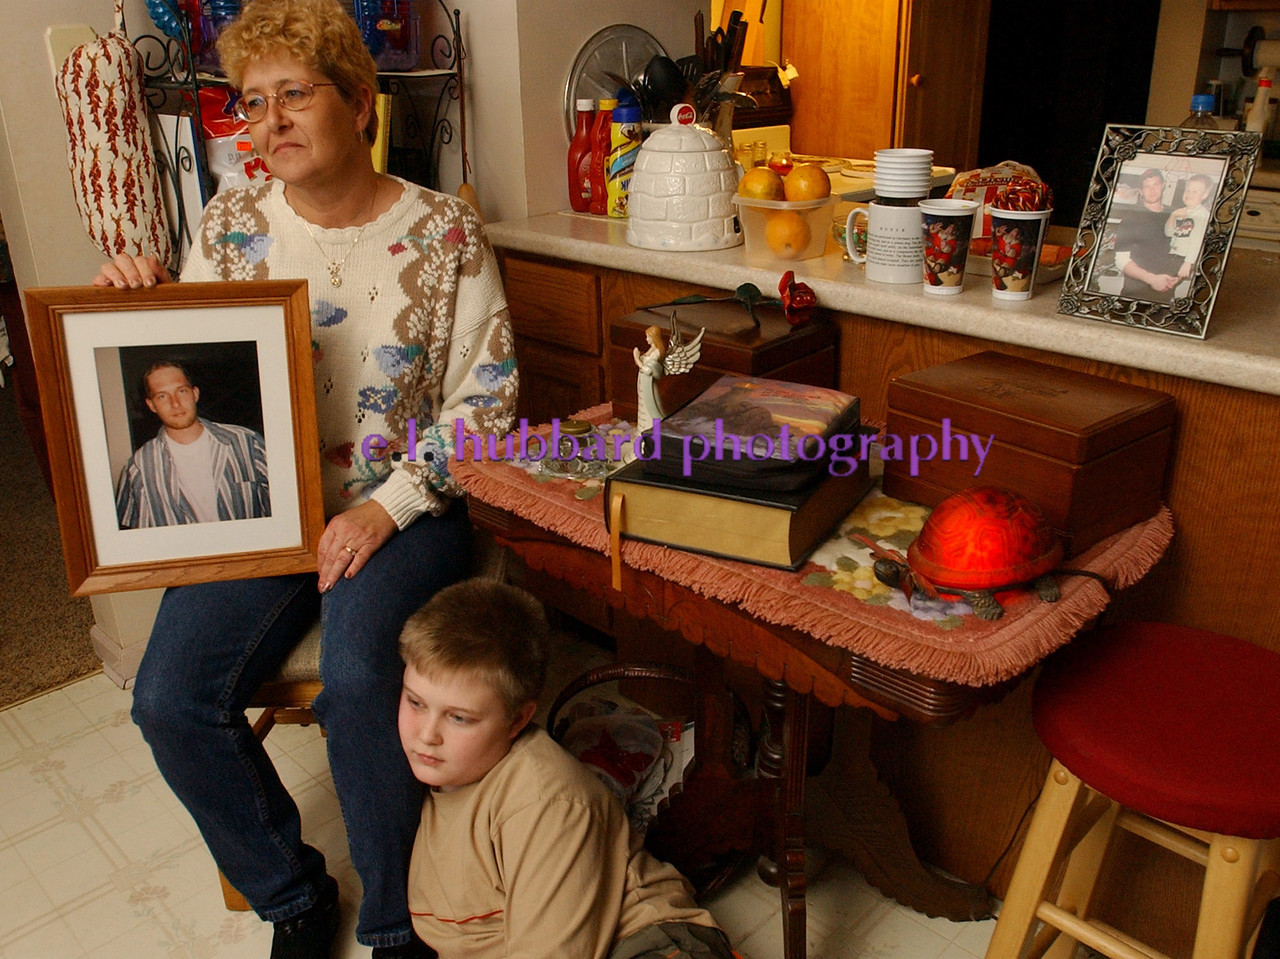 E.L. HUBBARD/JOURNALNEWS<br /> Cheryl Bartel and her grandson Jake Daniel Cooper, 10, in their Fairfield home Wednesday, 01/04/06 with pictures of Jon David Cooper, who was 25 at his death in 1999 and would have been 32 on Feb. 18. The box on the right of the memorial table contains the ashes of Jon David.